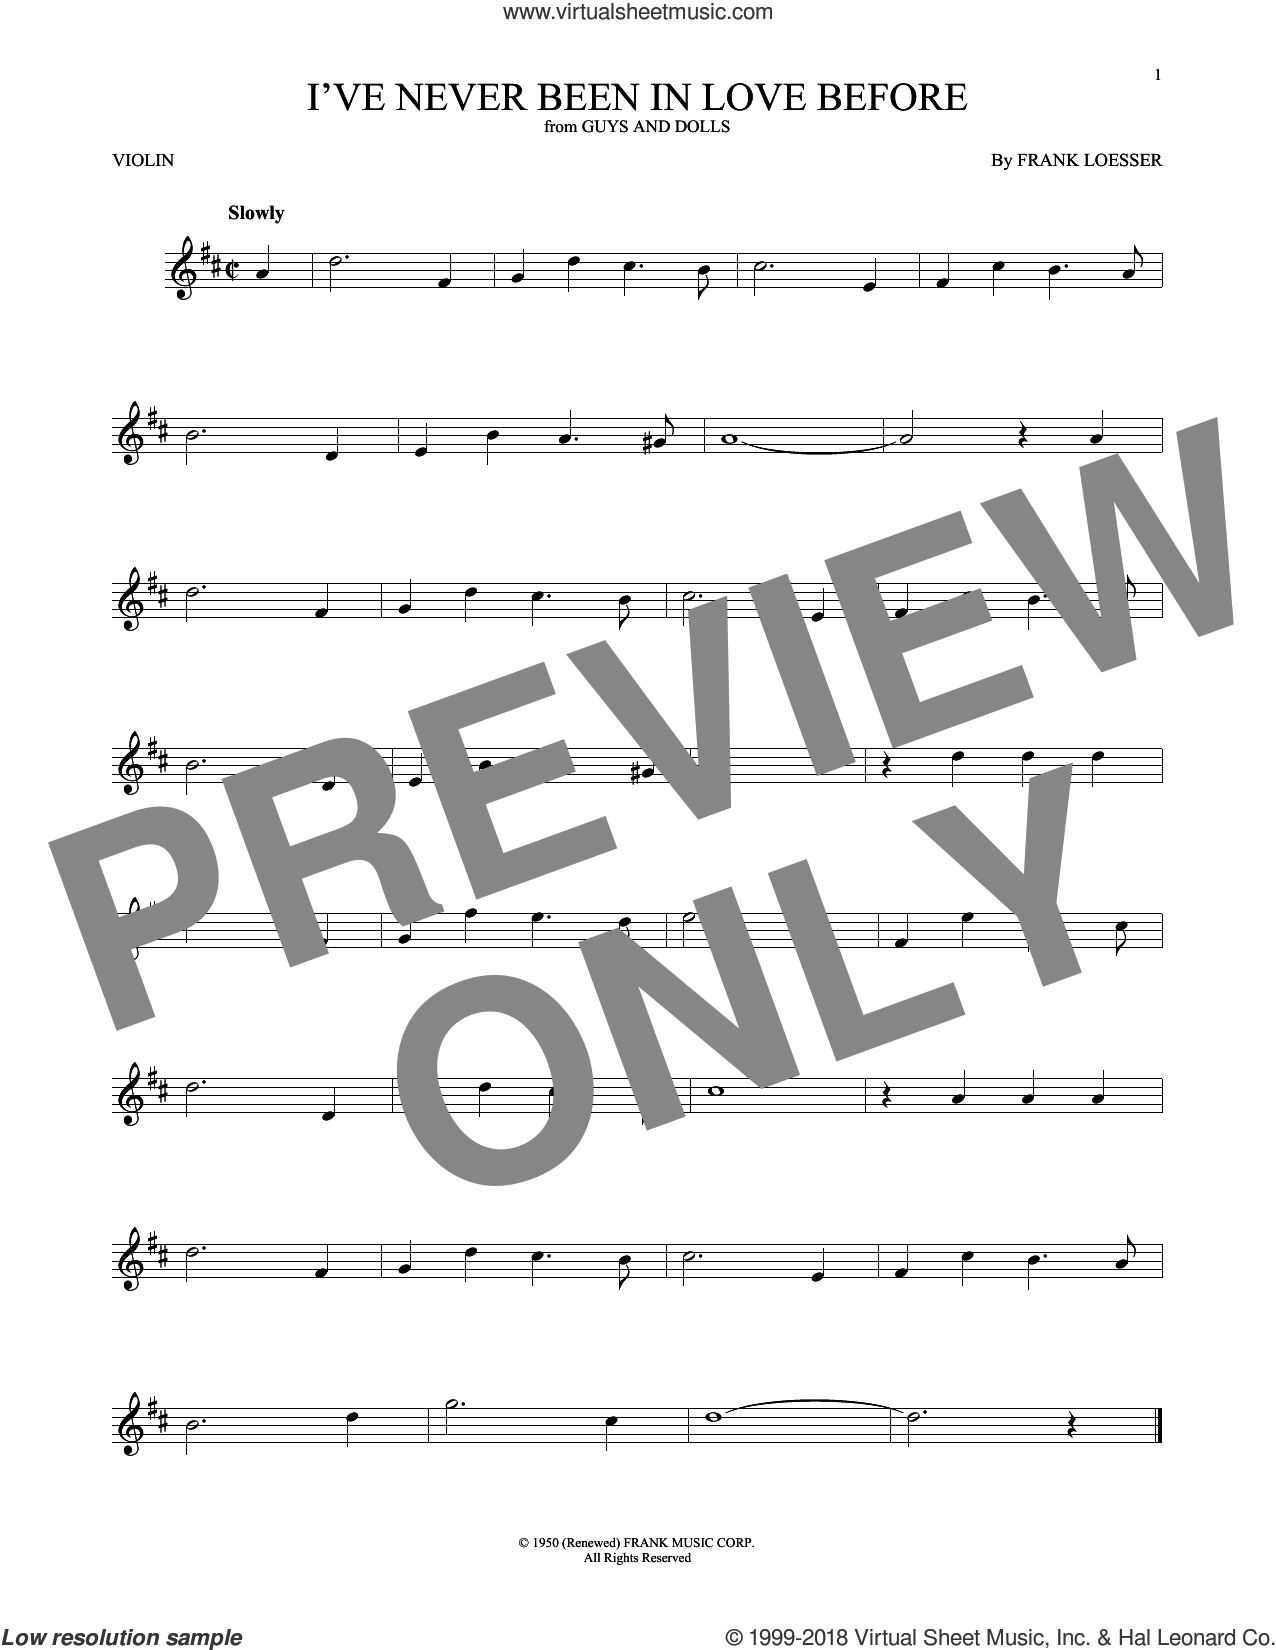 I've Never Been In Love Before sheet music for violin solo by Frank Loesser, Billy Eckstine, Chet Baker and Stan Kenton, intermediate skill level